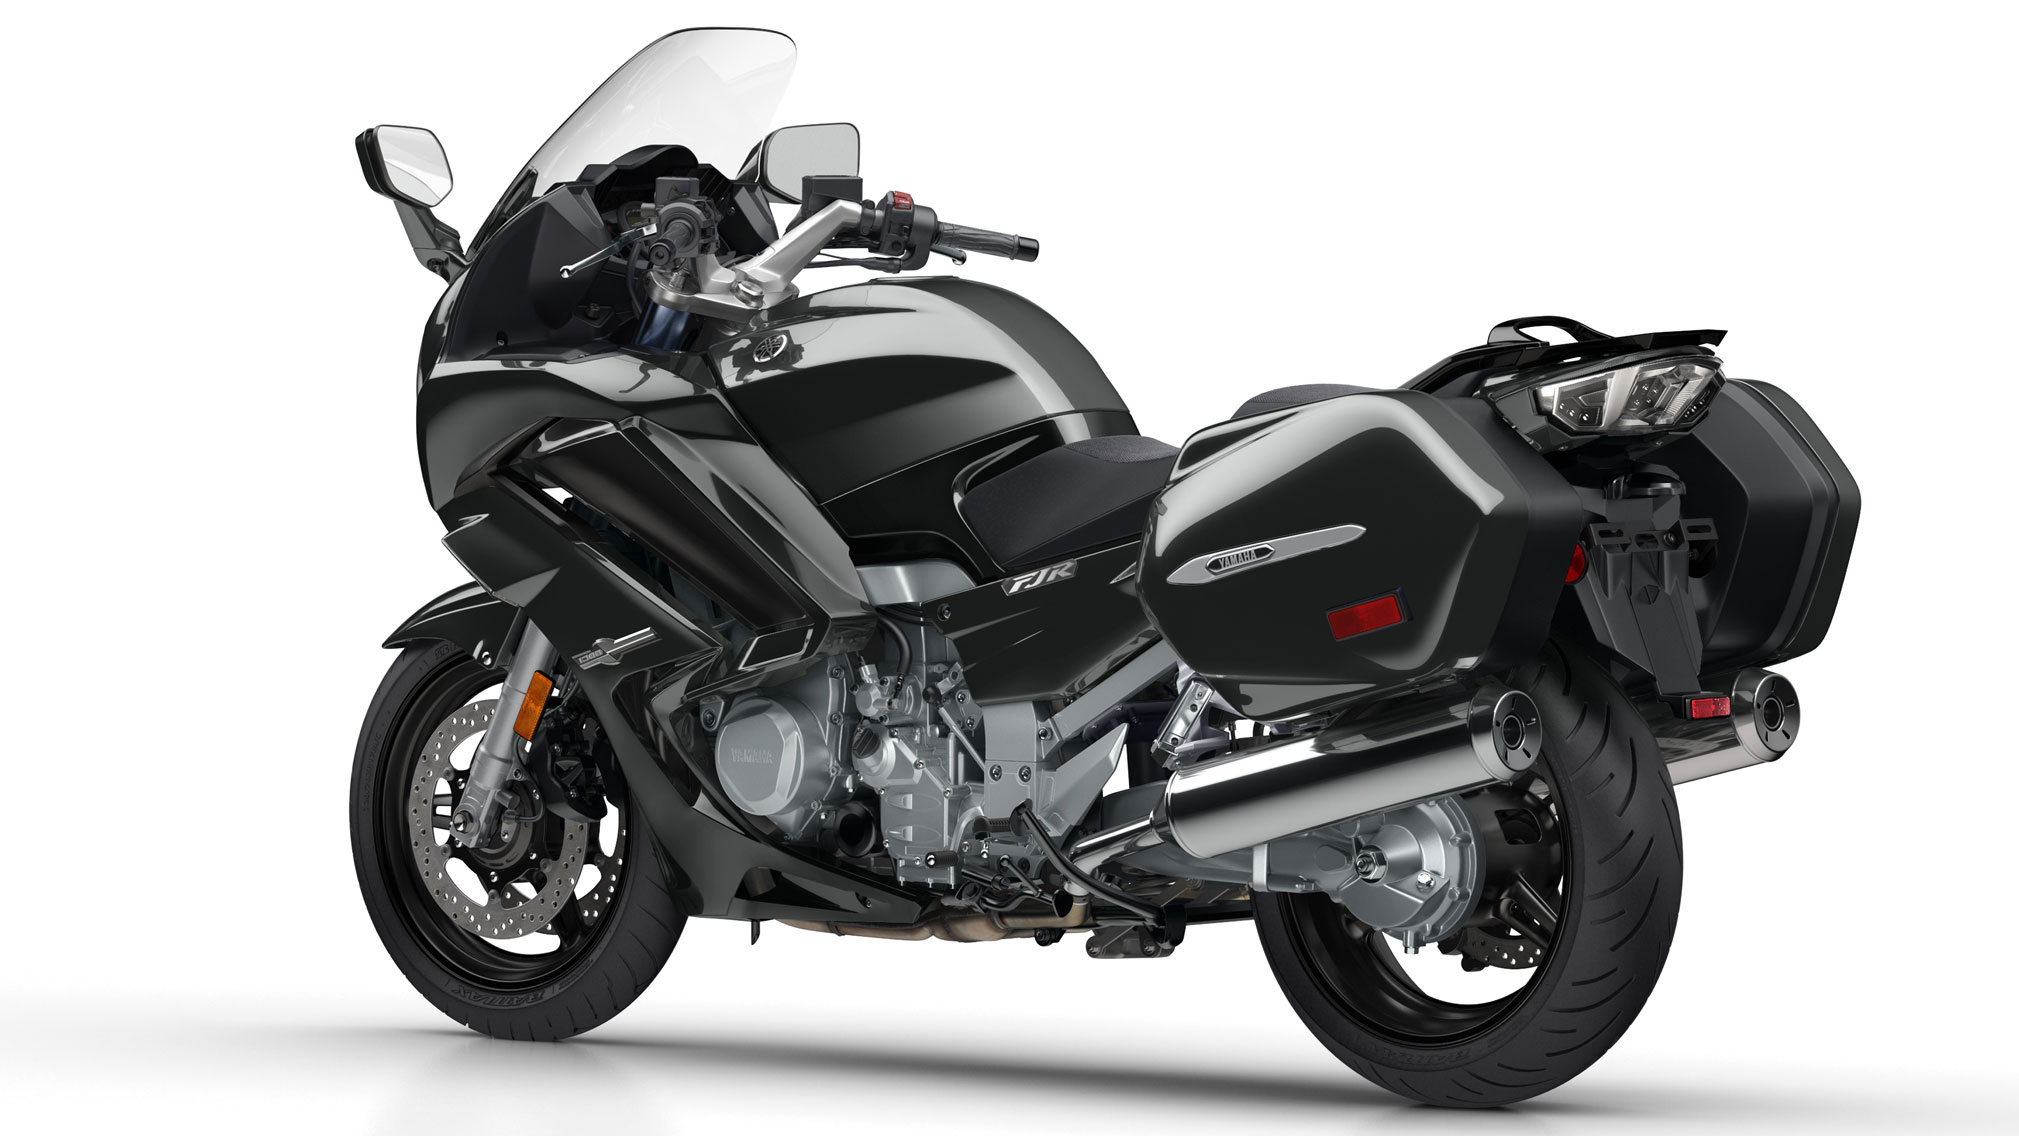 yamaha fjr1300a fjr1300ae motorcycles motorcycle bike sales total guide